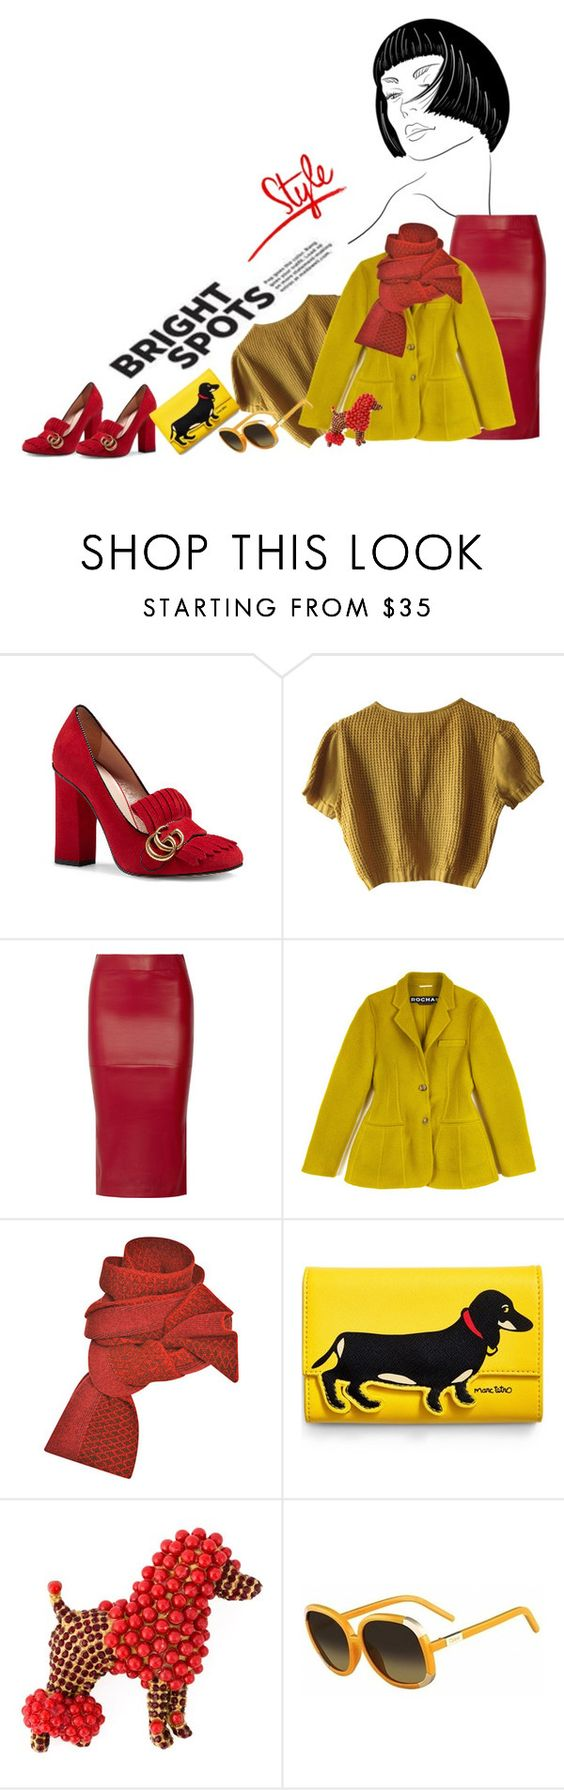 """""""Bright lover of dogs"""" by vinograd24 ❤ liked on Polyvore featuring Gucci, Schumacher, Zero + Maria Cornejo, Rochas, Prabal Gurung, Pupa, Dolce&Gabbana, Chloé and whatsyoursign"""